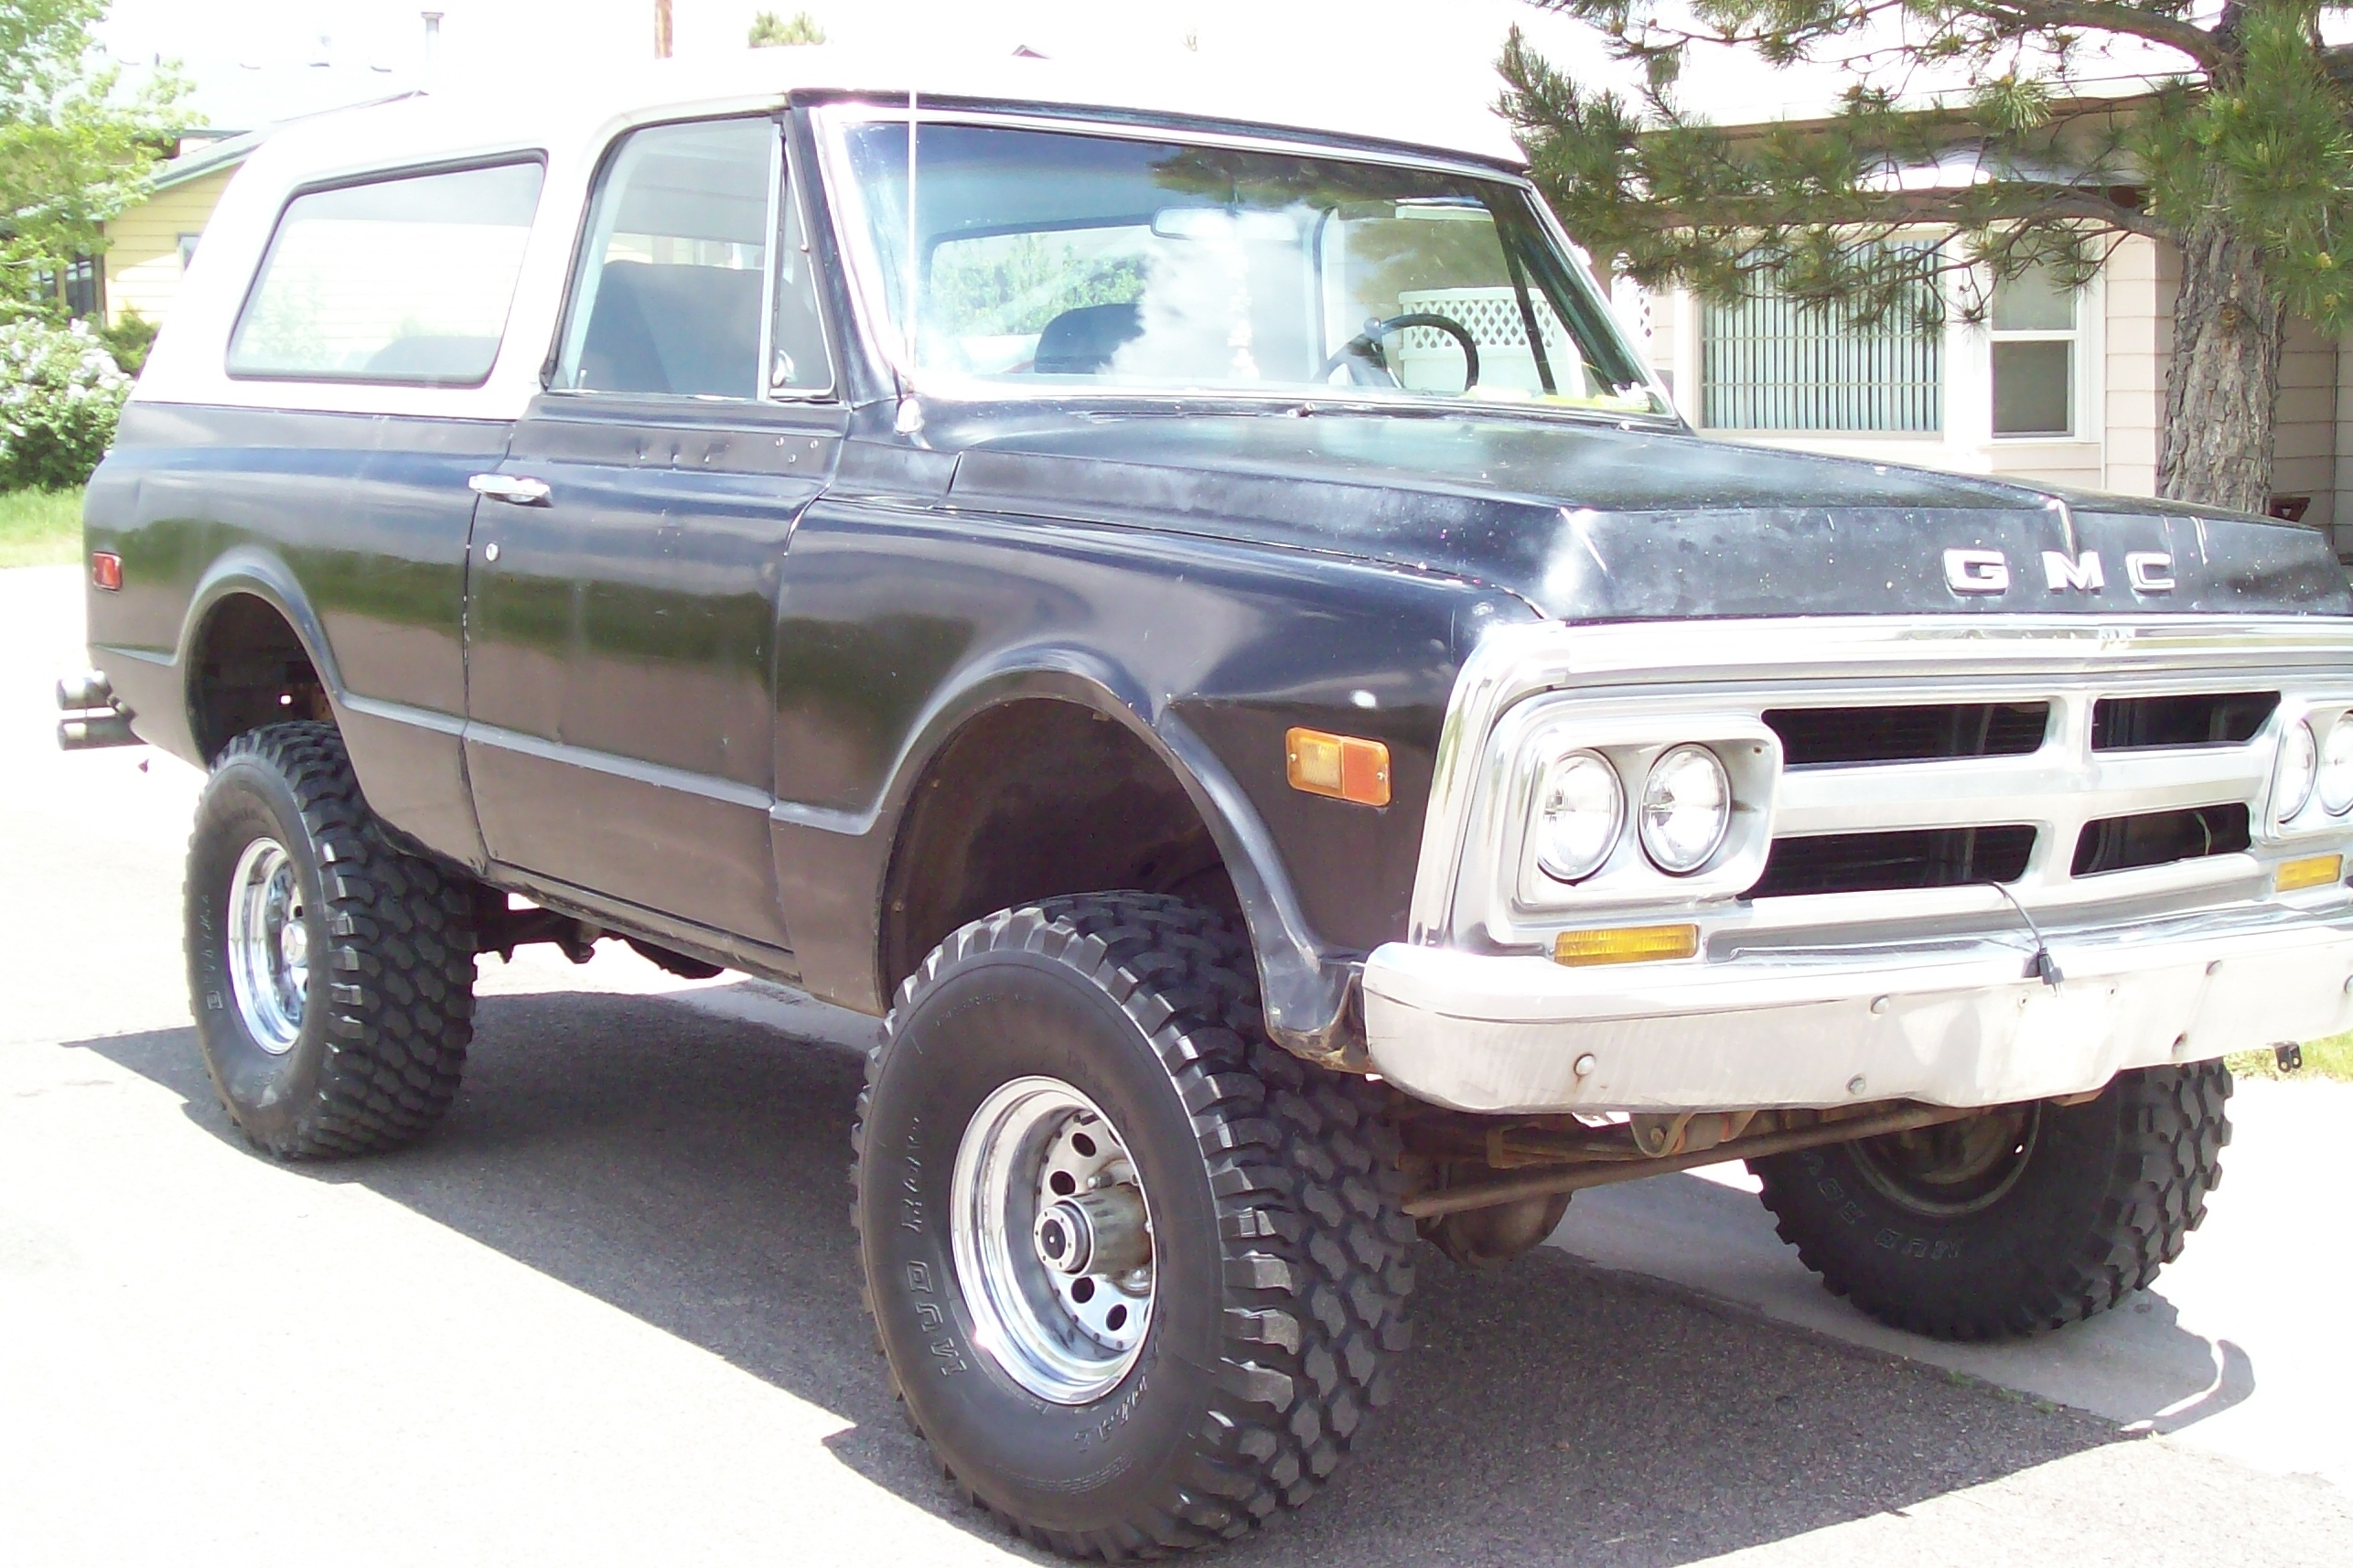 sle jimmy sale gmc for suv img used